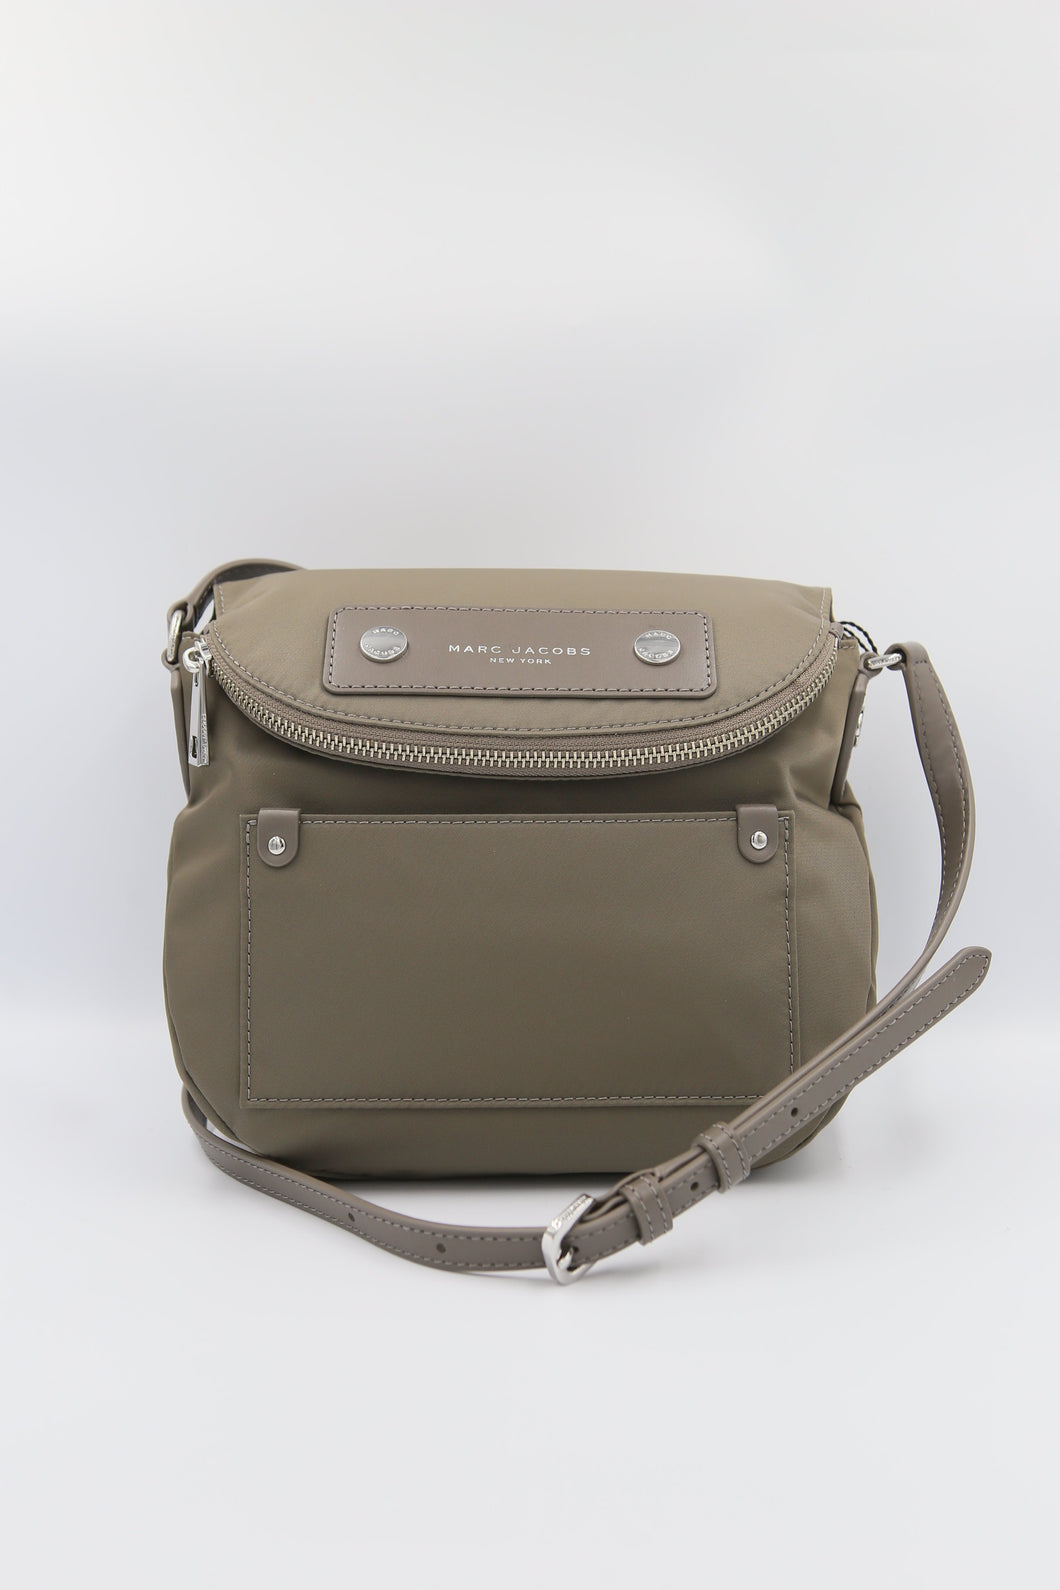 Marc Jacobs Mini Natasha M0012909 Nylon Crossbody Bag In Quartz Grey